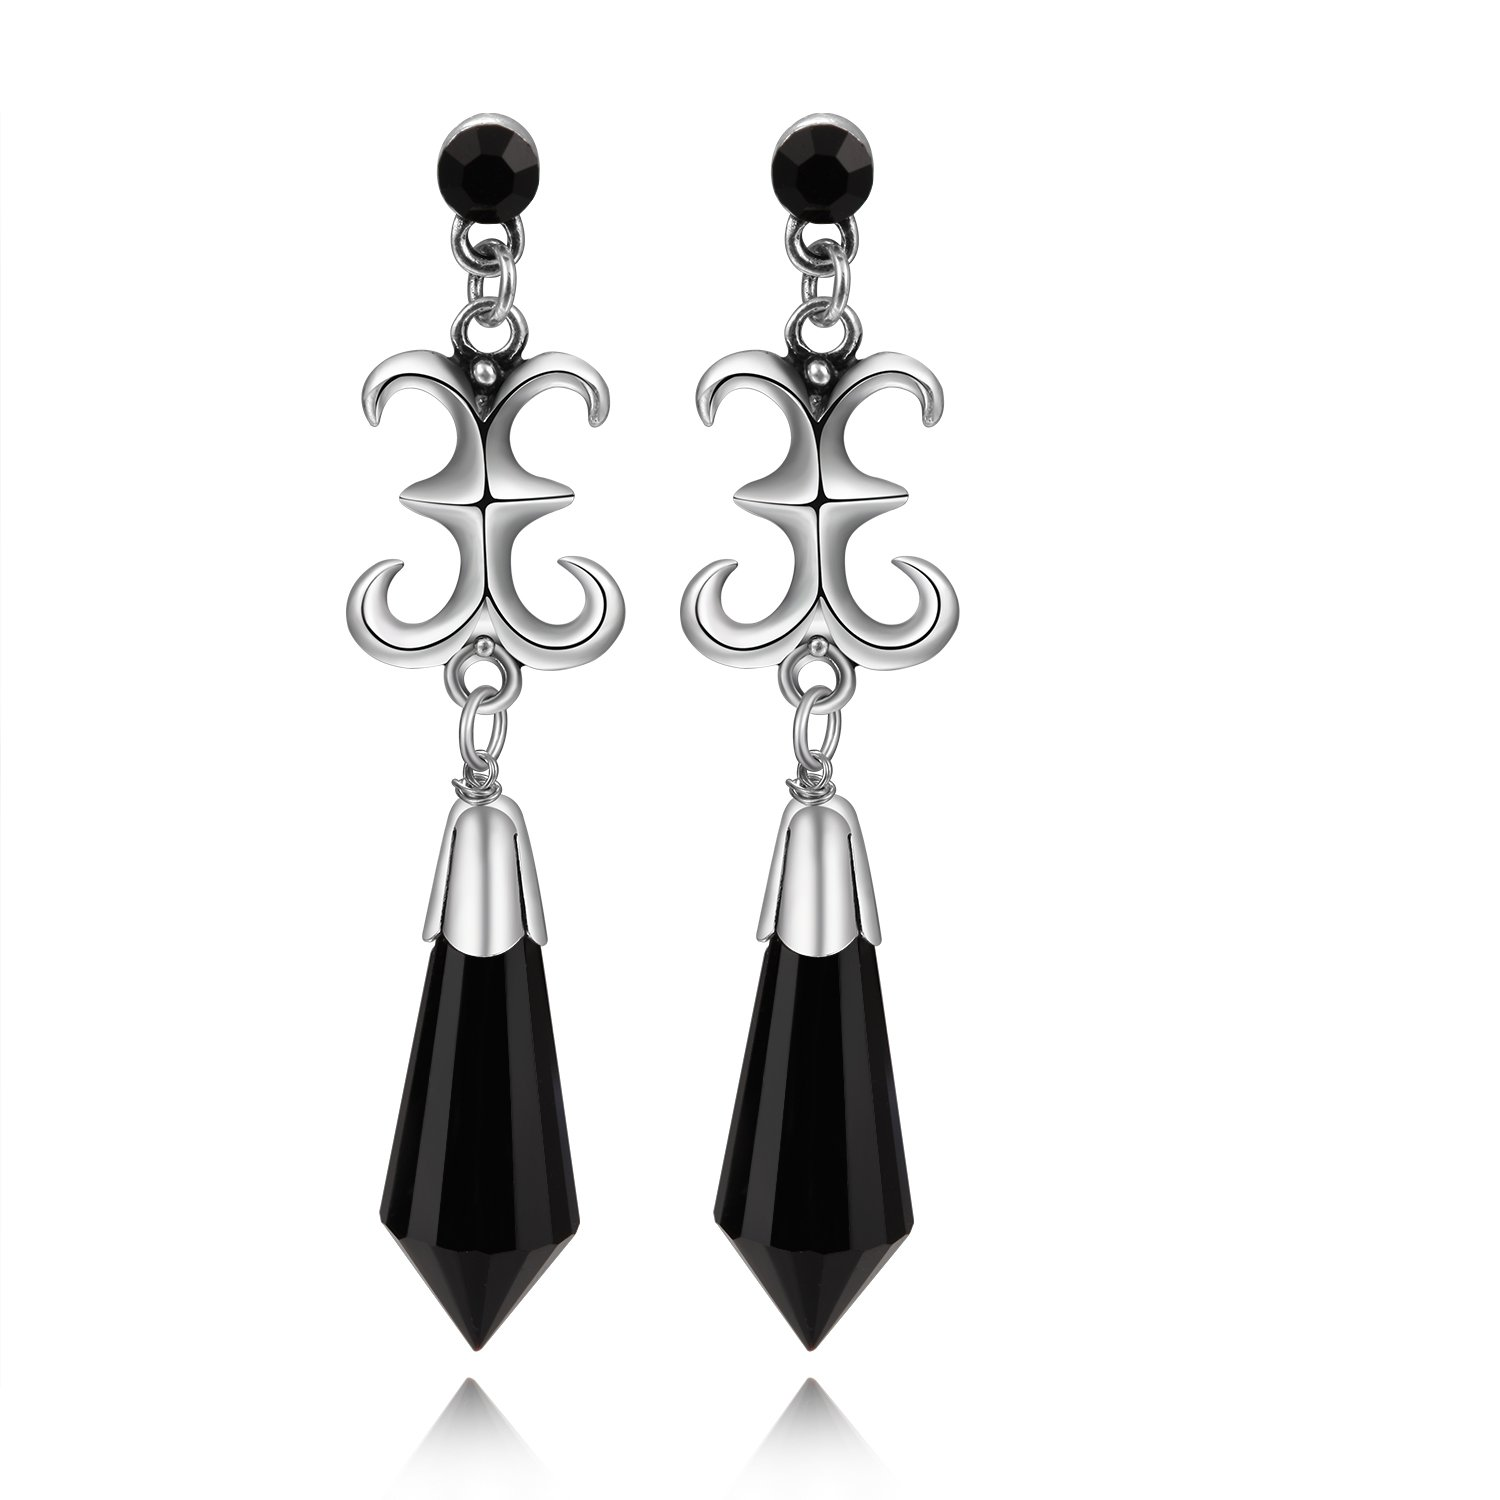 Super Amazon.com: Cosplaywho Sailor Moon Black Lady Earrings (gold studs  MX26